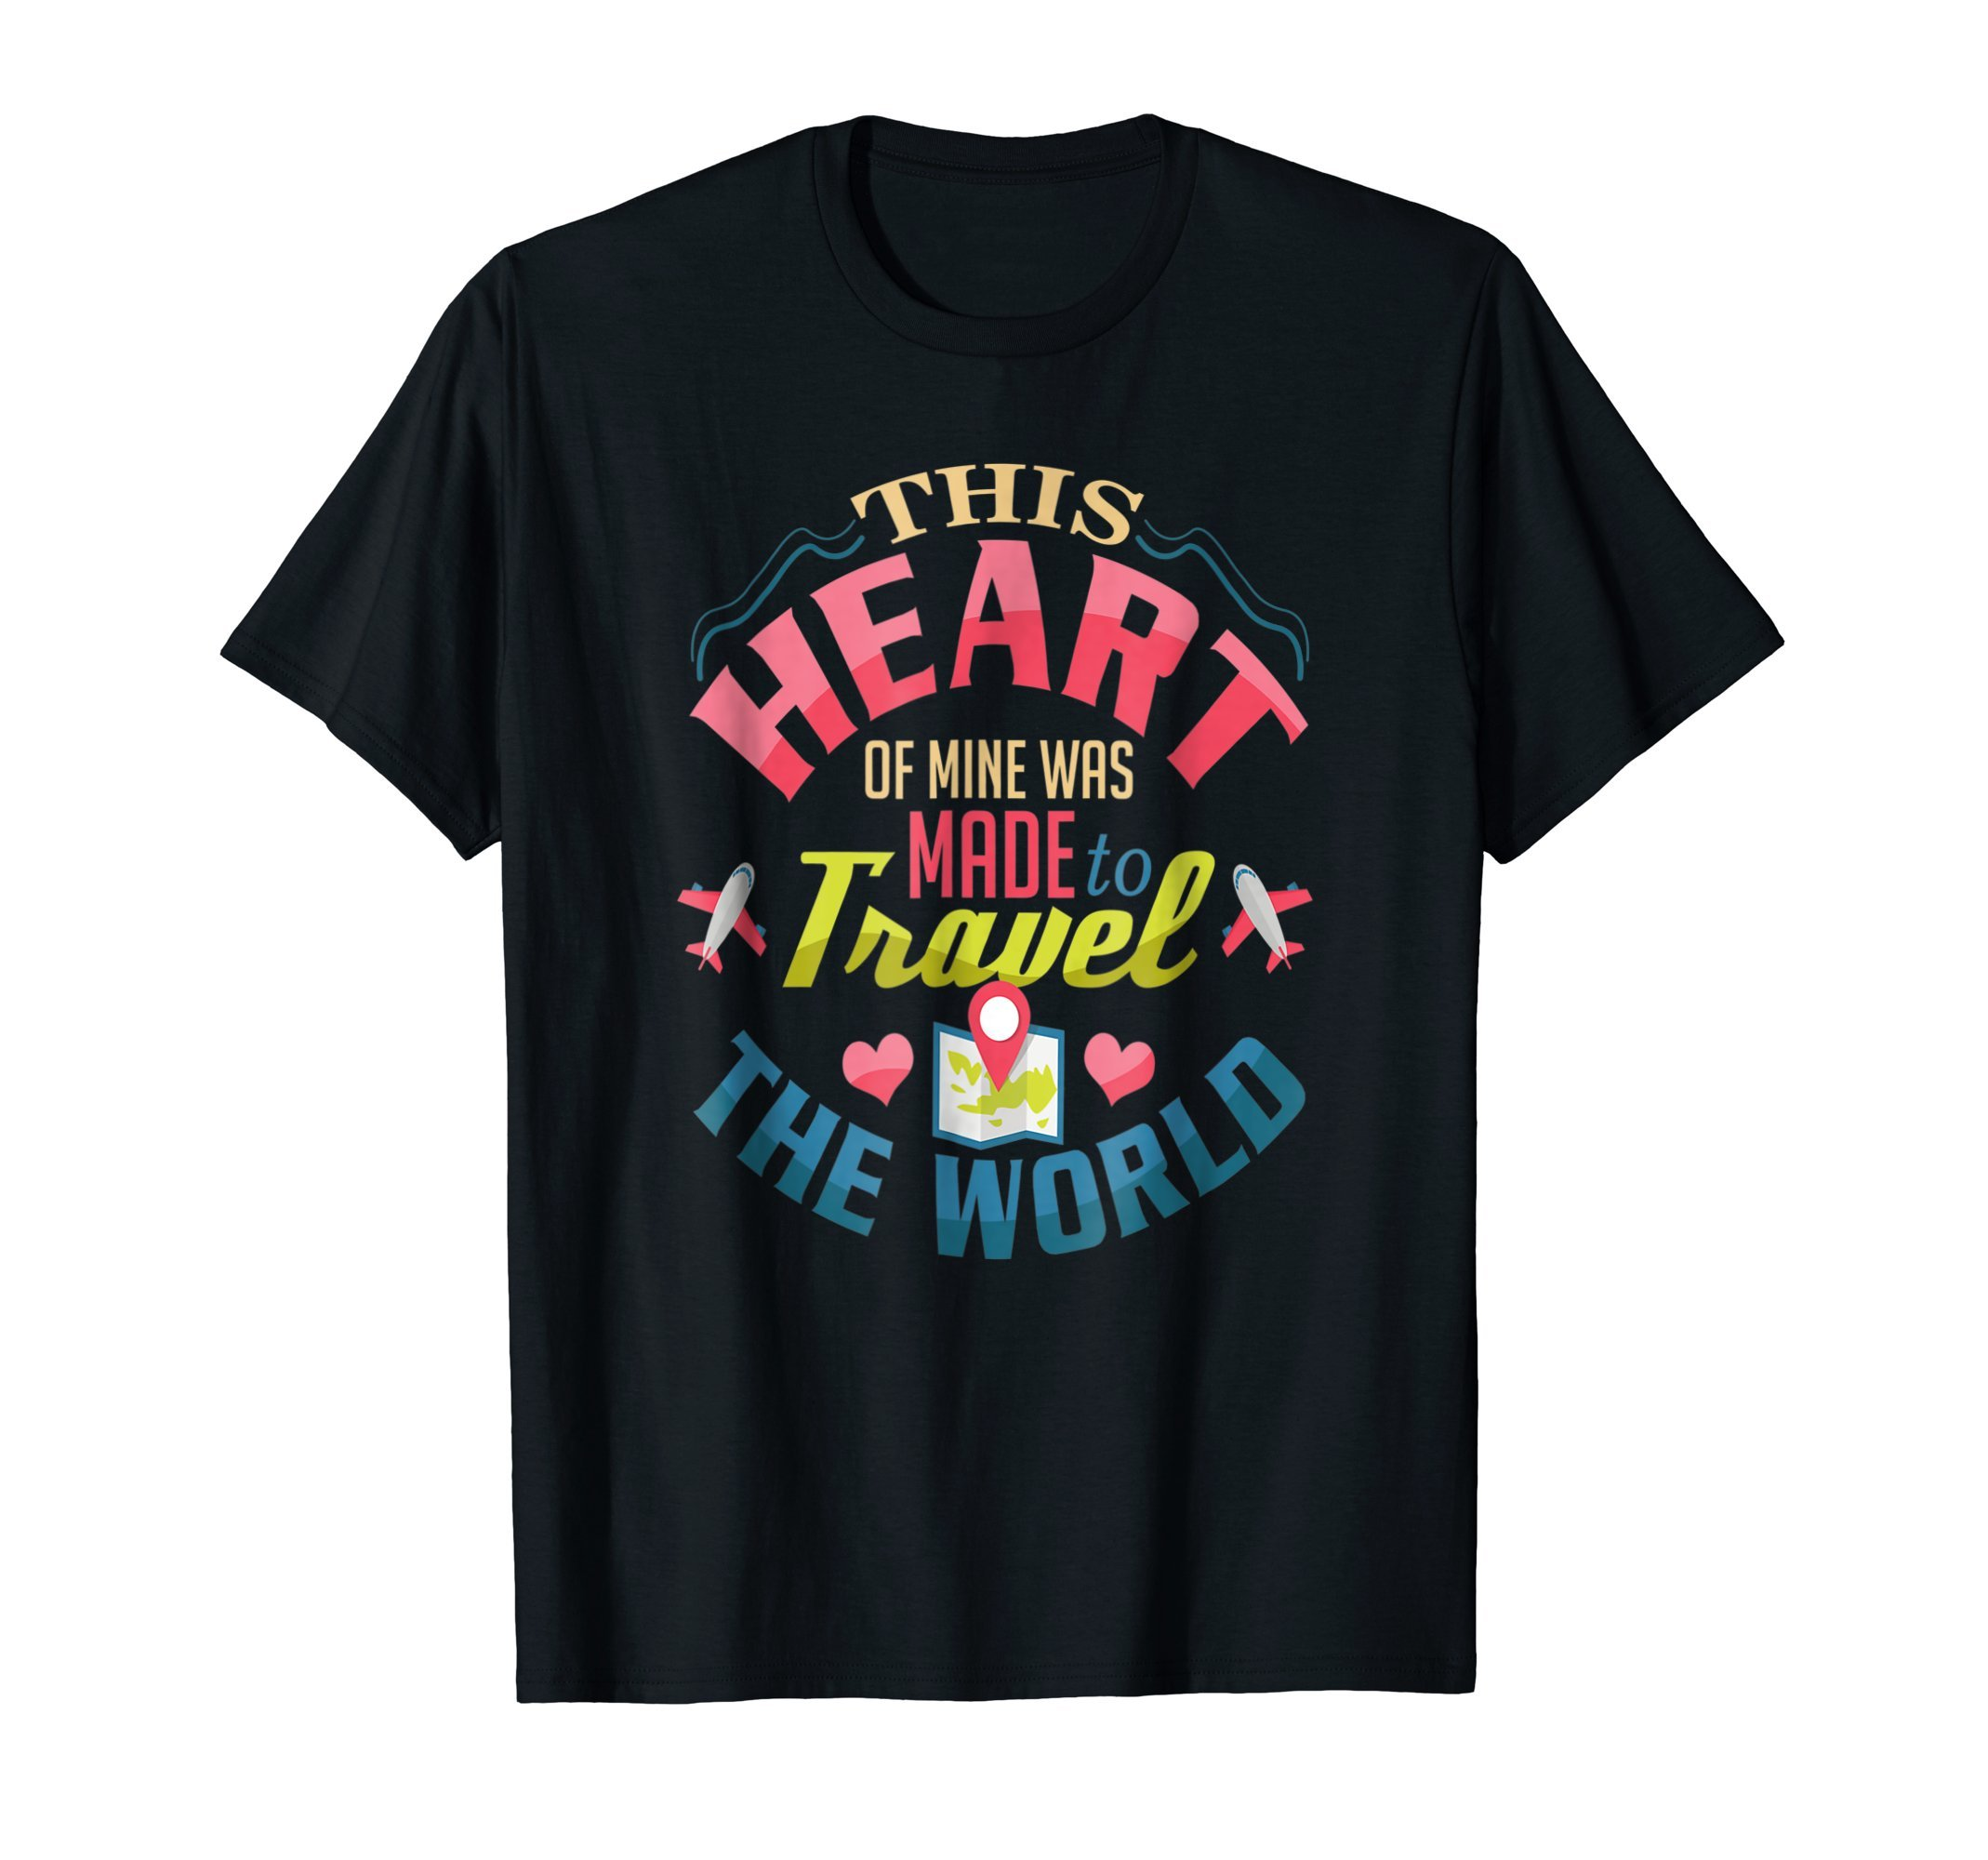 This Heart Of Mine Was Made To Travel The World T-Shirt